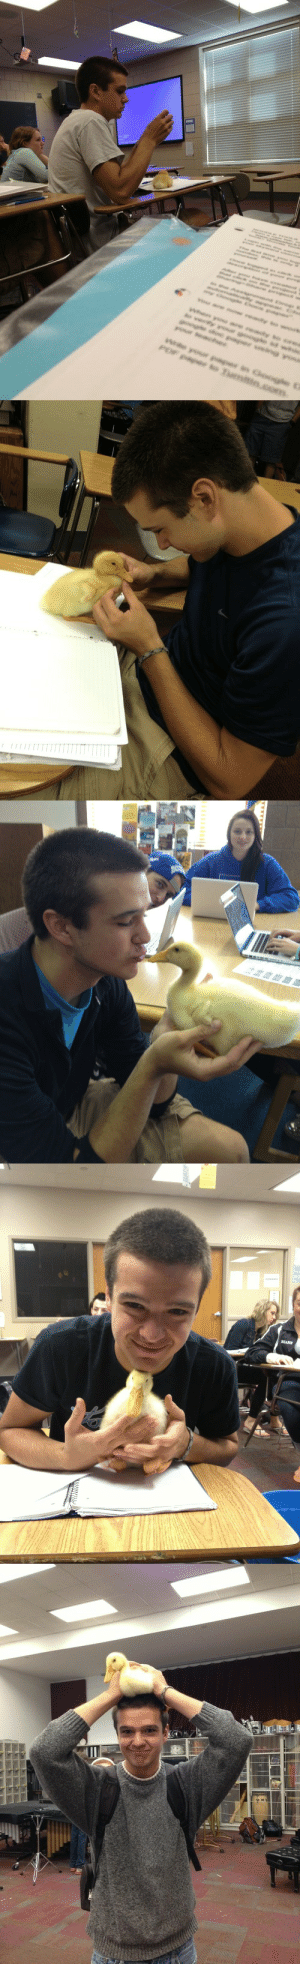 subterraneanbunnypig:  devissitrhw:  Compiled all of the boy and his duck pictures with their original sourcing in what I hope is chronological order.   teenytigress         SO THIS GUY IN MY ENGLISH IS DOING A PROJECT FOR BIO WHERE HE GETS A DUCKLING TO IMPRINT ON HIM SO HE JUST CARRIES IT AROUND WITH HIM TO ALL OF HIS CLASSES AND I SWEAR THIS DUCK IS THE MOST WELL BEHAVED FUCKING POULTRY IVE EVER SEEN IT JUST SITS ON HIS DESK QUIETLY AND SOMETIMES HE PUTS IT IN HIS POCKET AND IT JUST SLEEPS LIKE WOW YOU GO DUCKY    teenytigress    THERE HE IS, WHAT A GEM AND LOOK AT THAT FUCKING DUCKLING AH I CAN'T    teenytigress    DUCK UPDATE: IT HAS IMPRINTED AND THINKS THIS BOY IS IT'S MOMMY. OMG    teenytigress    DUCK UPDATE: TODAY WE HAD A FIRE DRILL AND HE CARRIED THE DUCKY OUTSIDE WITH HIM AND CRADLED IT PROTECTIVELY AND MOTHERLY INSTINCTS ARE FUCKING ADORABLE    did-venusblowyour-mind    I know the duck boy and he and his duck are inseparable. An indestructible bond to say the least.        Actual Kids Story: A Boy and His Duck : e reacy  ng you  We your paper in Googte D  POF paper to Turnitin.com   pa subterraneanbunnypig:  devissitrhw:  Compiled all of the boy and his duck pictures with their original sourcing in what I hope is chronological order.   teenytigress         SO THIS GUY IN MY ENGLISH IS DOING A PROJECT FOR BIO WHERE HE GETS A DUCKLING TO IMPRINT ON HIM SO HE JUST CARRIES IT AROUND WITH HIM TO ALL OF HIS CLASSES AND I SWEAR THIS DUCK IS THE MOST WELL BEHAVED FUCKING POULTRY IVE EVER SEEN IT JUST SITS ON HIS DESK QUIETLY AND SOMETIMES HE PUTS IT IN HIS POCKET AND IT JUST SLEEPS LIKE WOW YOU GO DUCKY    teenytigress    THERE HE IS, WHAT A GEM AND LOOK AT THAT FUCKING DUCKLING AH I CAN'T    teenytigress    DUCK UPDATE: IT HAS IMPRINTED AND THINKS THIS BOY IS IT'S MOMMY. OMG    teenytigress    DUCK UPDATE: TODAY WE HAD A FIRE DRILL AND HE CARRIED THE DUCKY OUTSIDE WITH HIM AND CRADLED IT PROTECTIVELY AND MOTHERLY INSTINCTS ARE FUCKING ADORABLE    did-venusblo